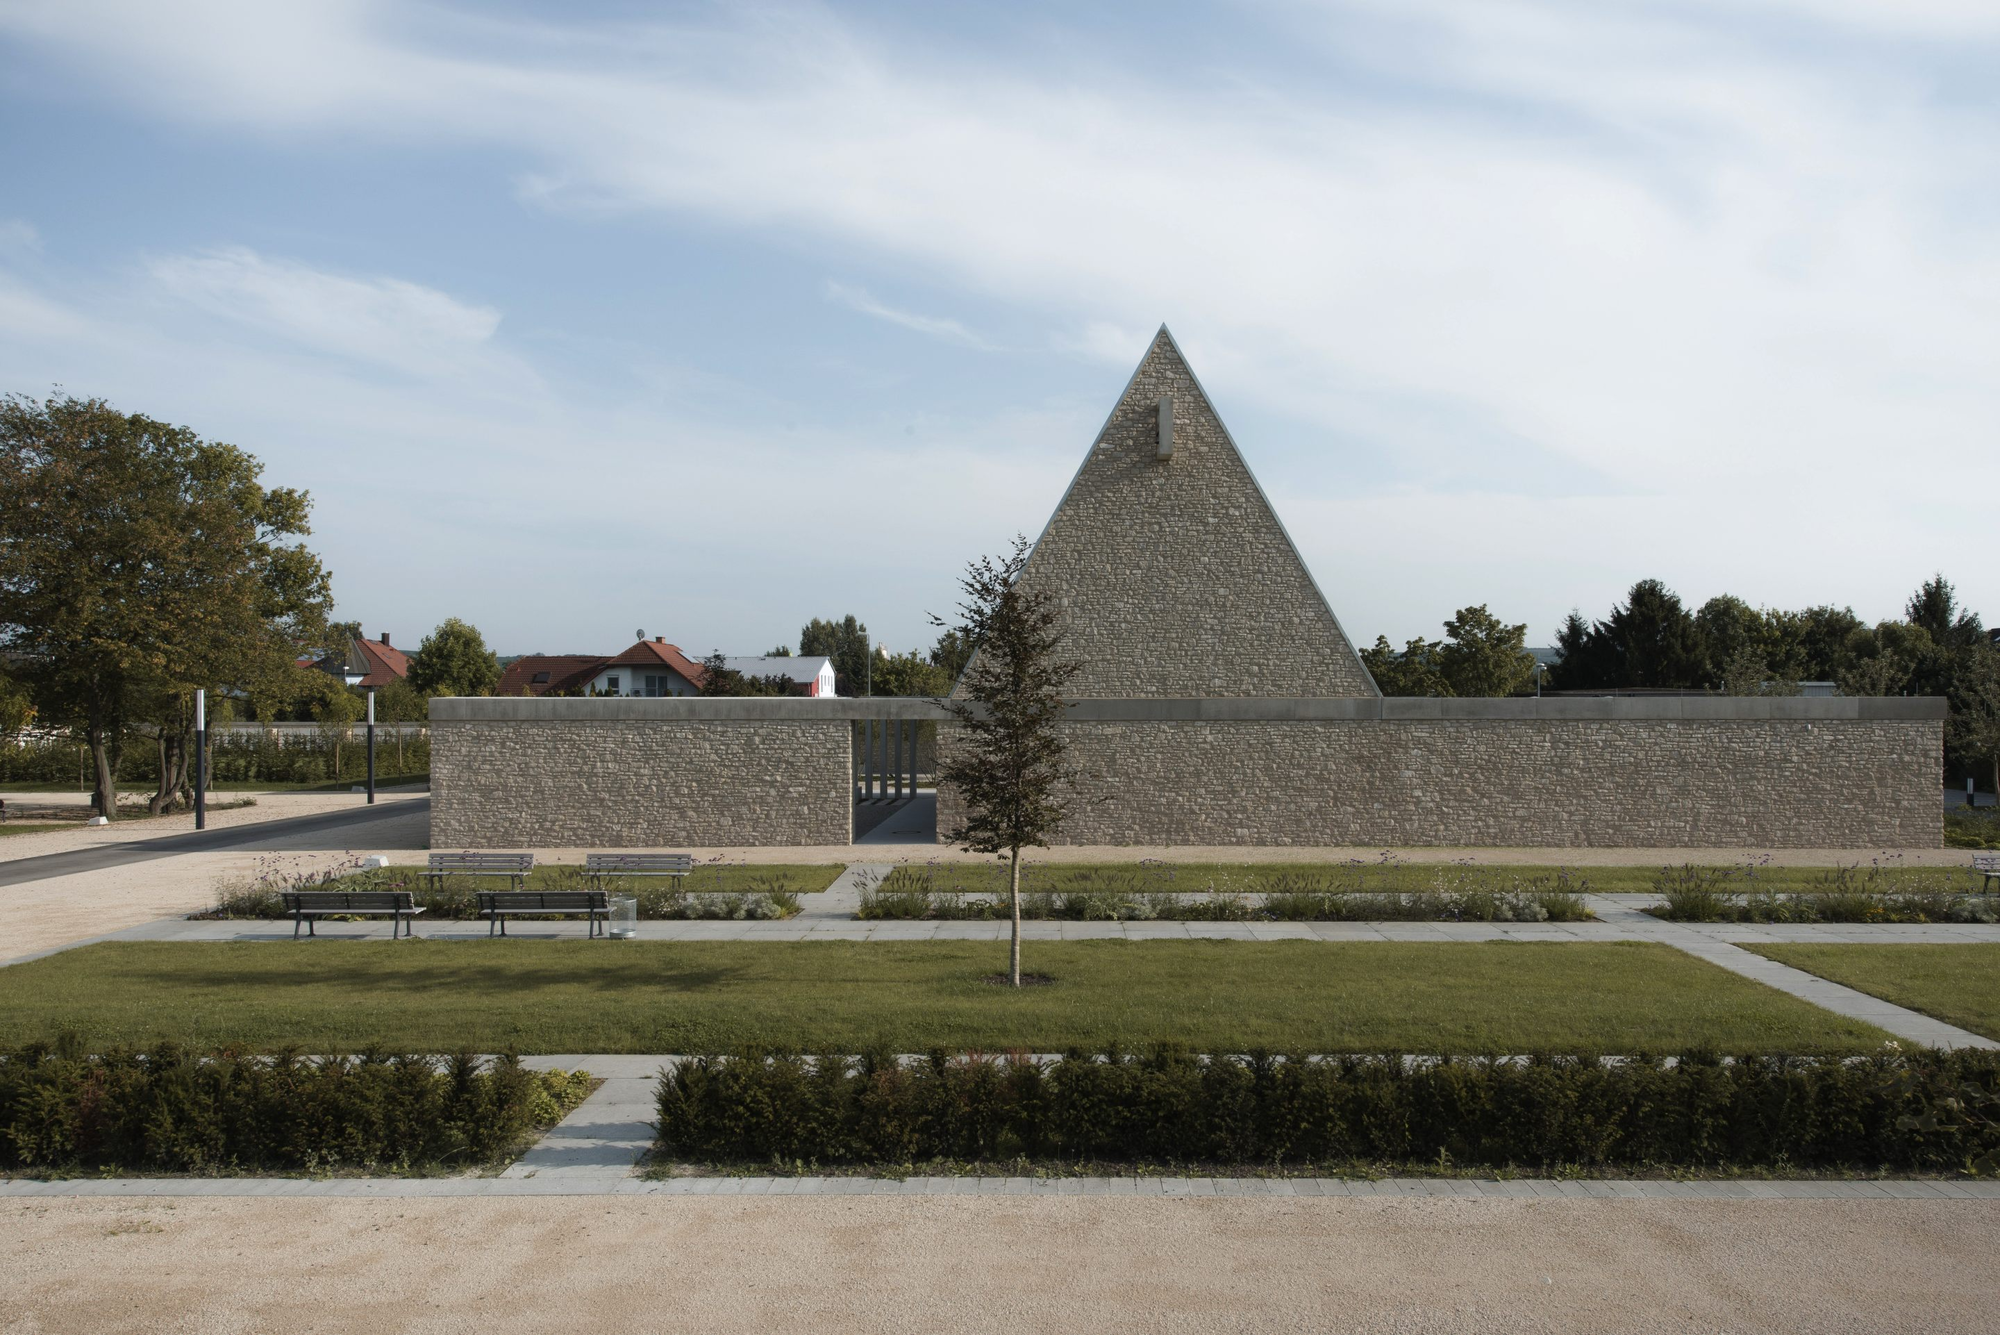 Ingelheim Funeral Chapel / Bayer & Strobel Architekten, Courtesy of Bayer & Strobel Architekten